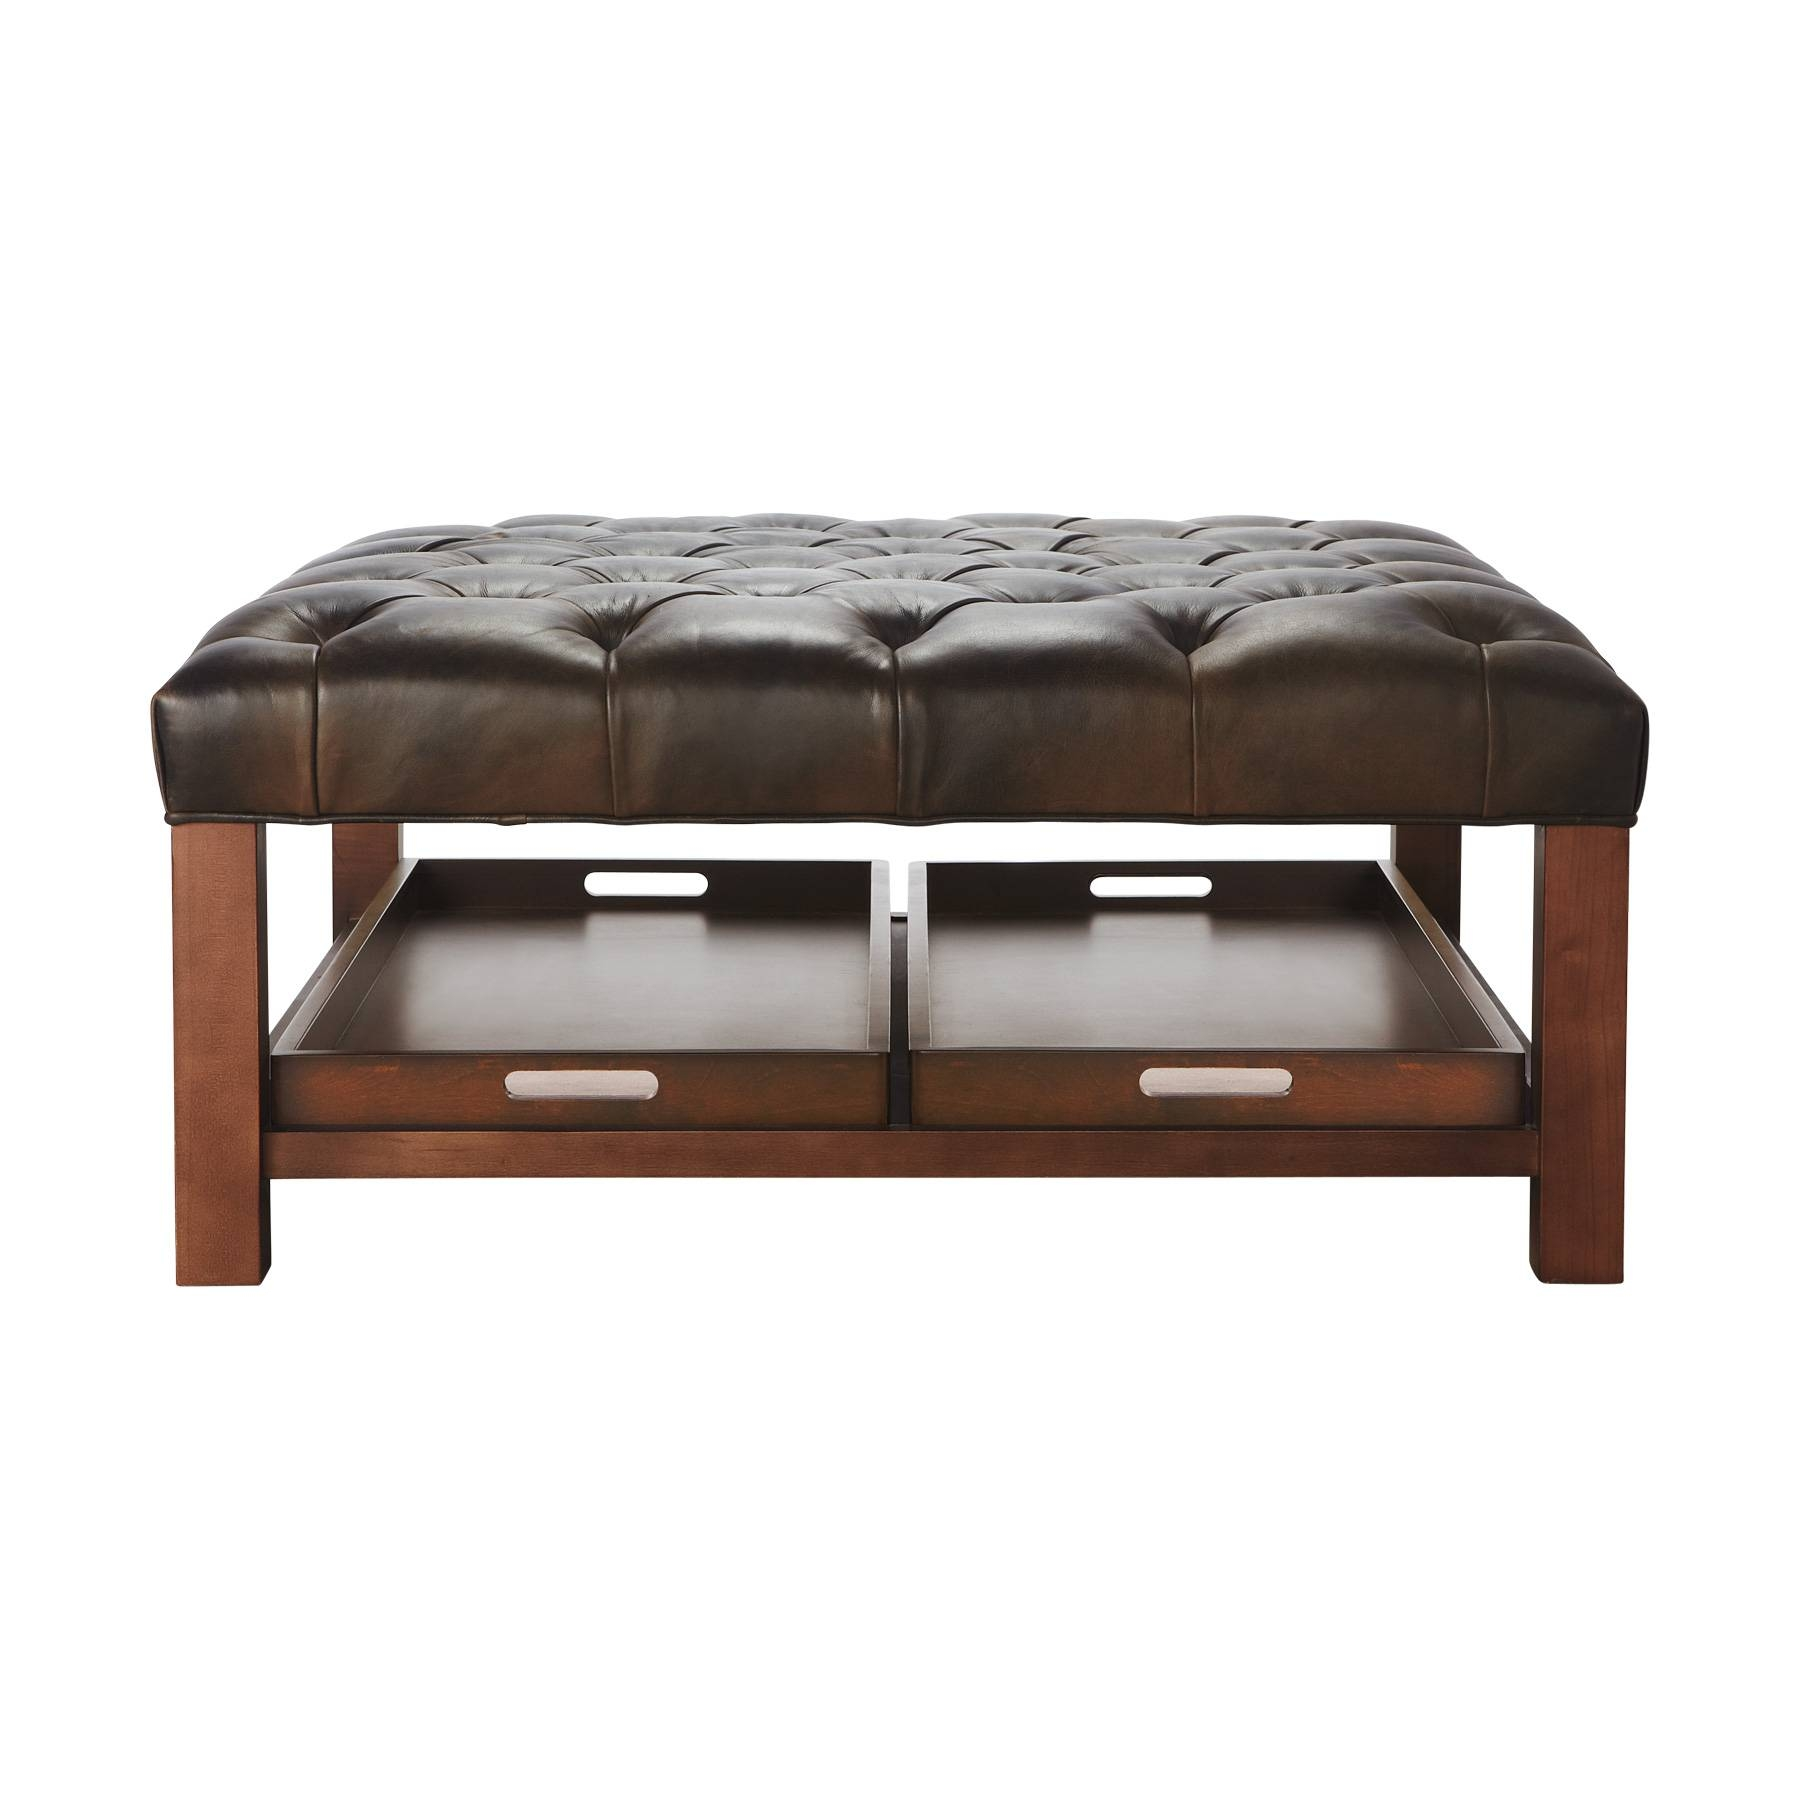 Brown Leather Ottoman Coffee Table With Storage | Coffee Tables for Brown Leather Ottoman Coffee Tables (Image 11 of 30)